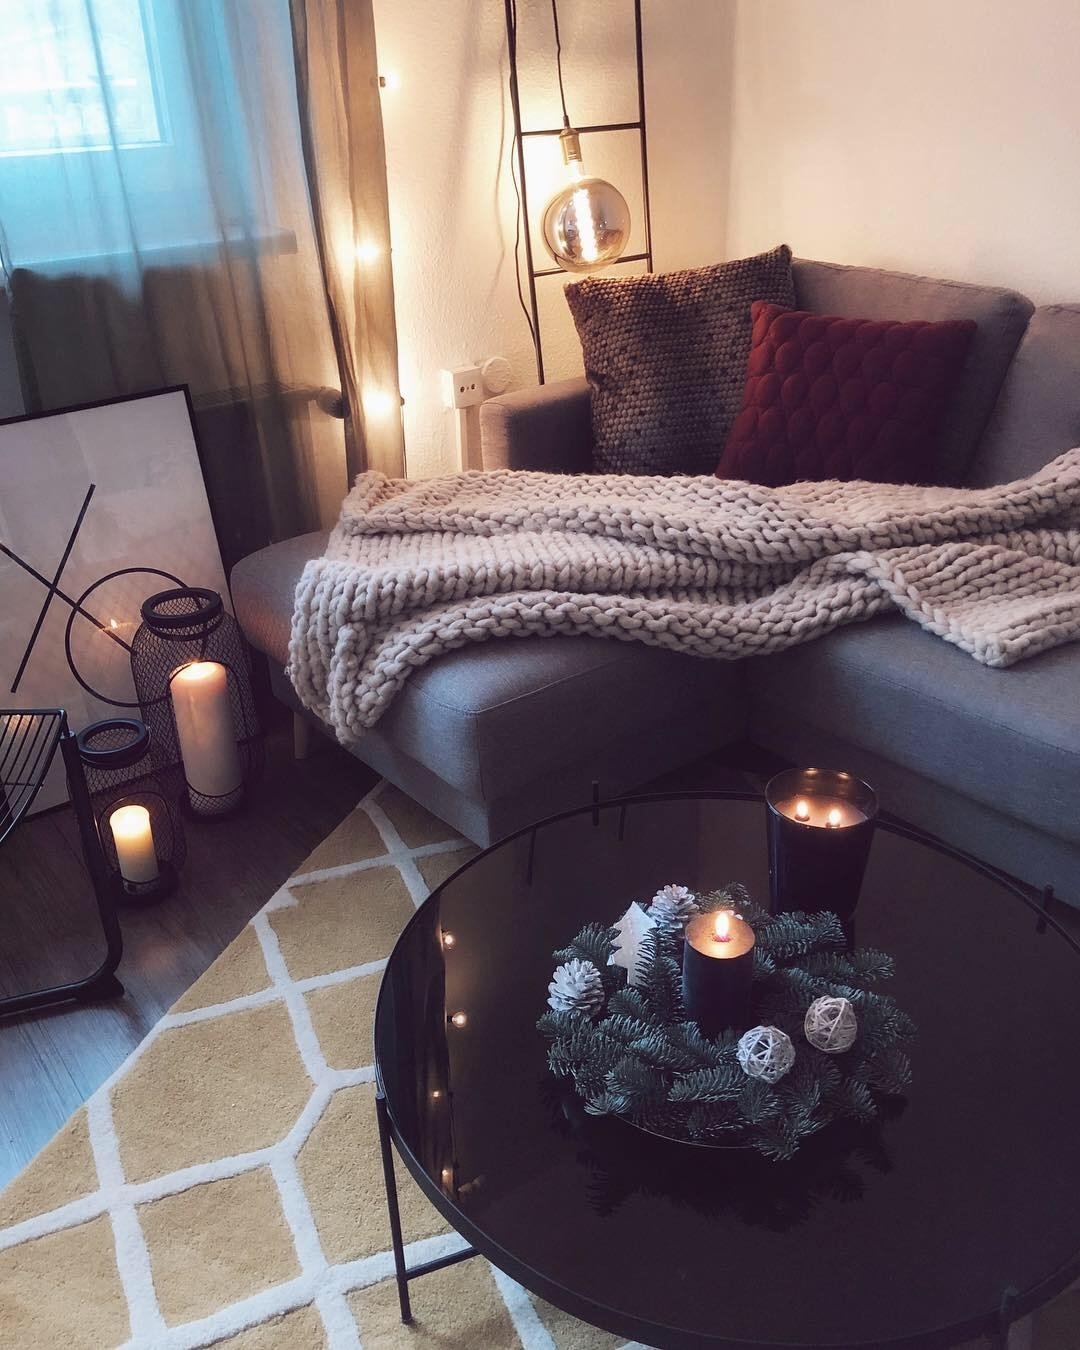 Right place for cold winter days livingroominspo livingroom cozyroom wohnzimmerdeko instagram vntyflair62367  12cfe271 79c1 4d8a b08e 14d9694aaa2a